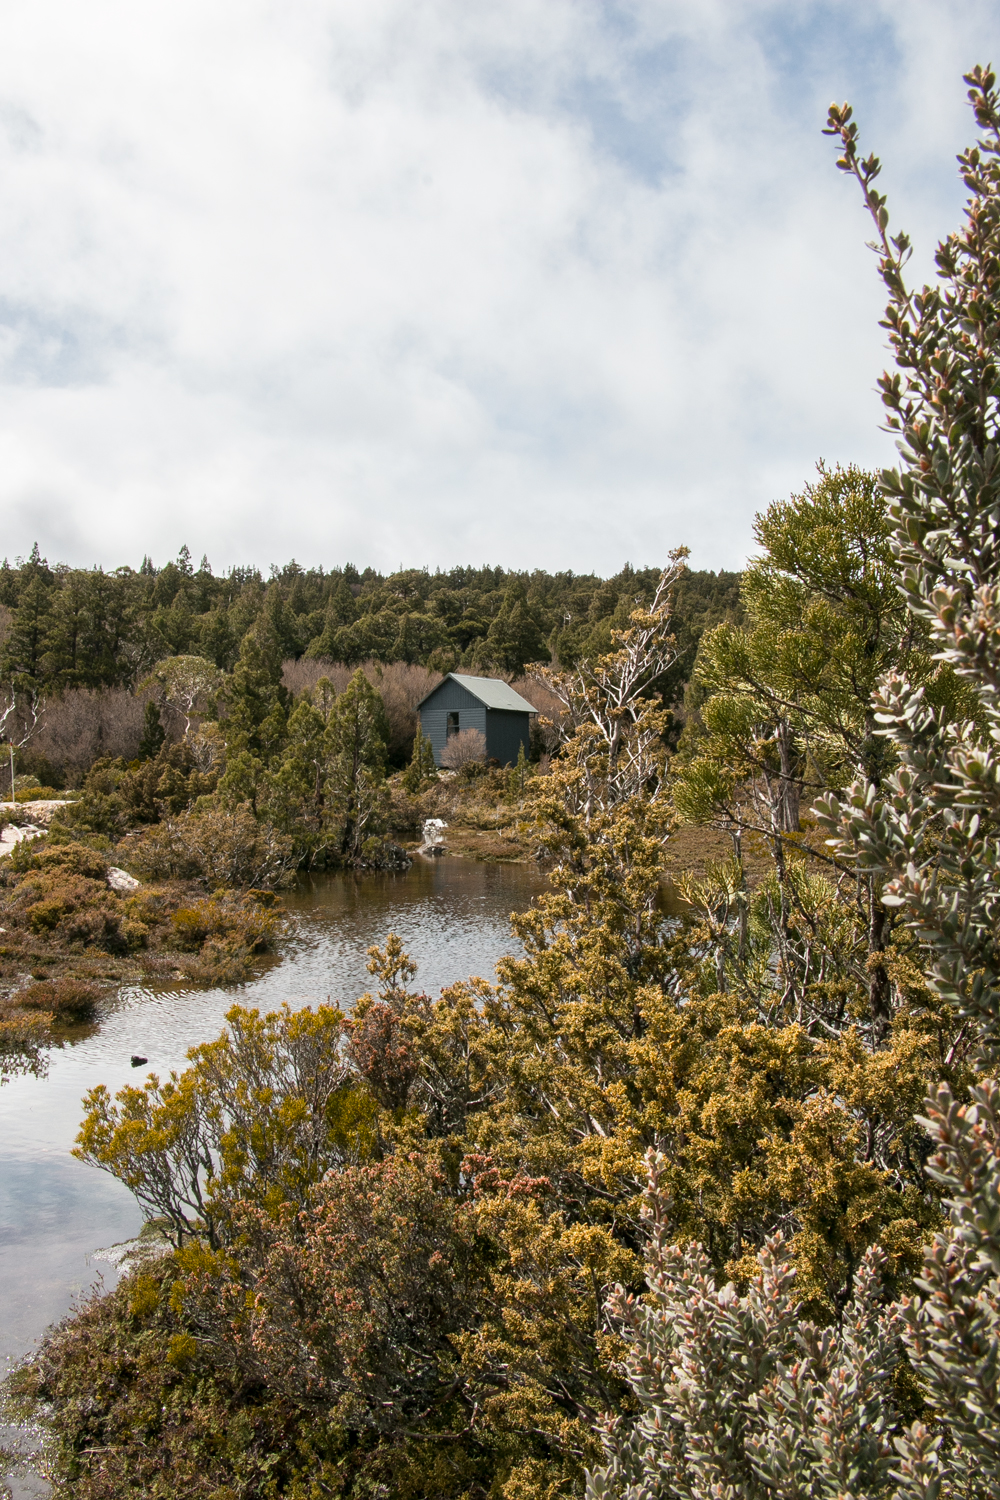 One of the many emergency hiking refuge huts around Cradle Mountain